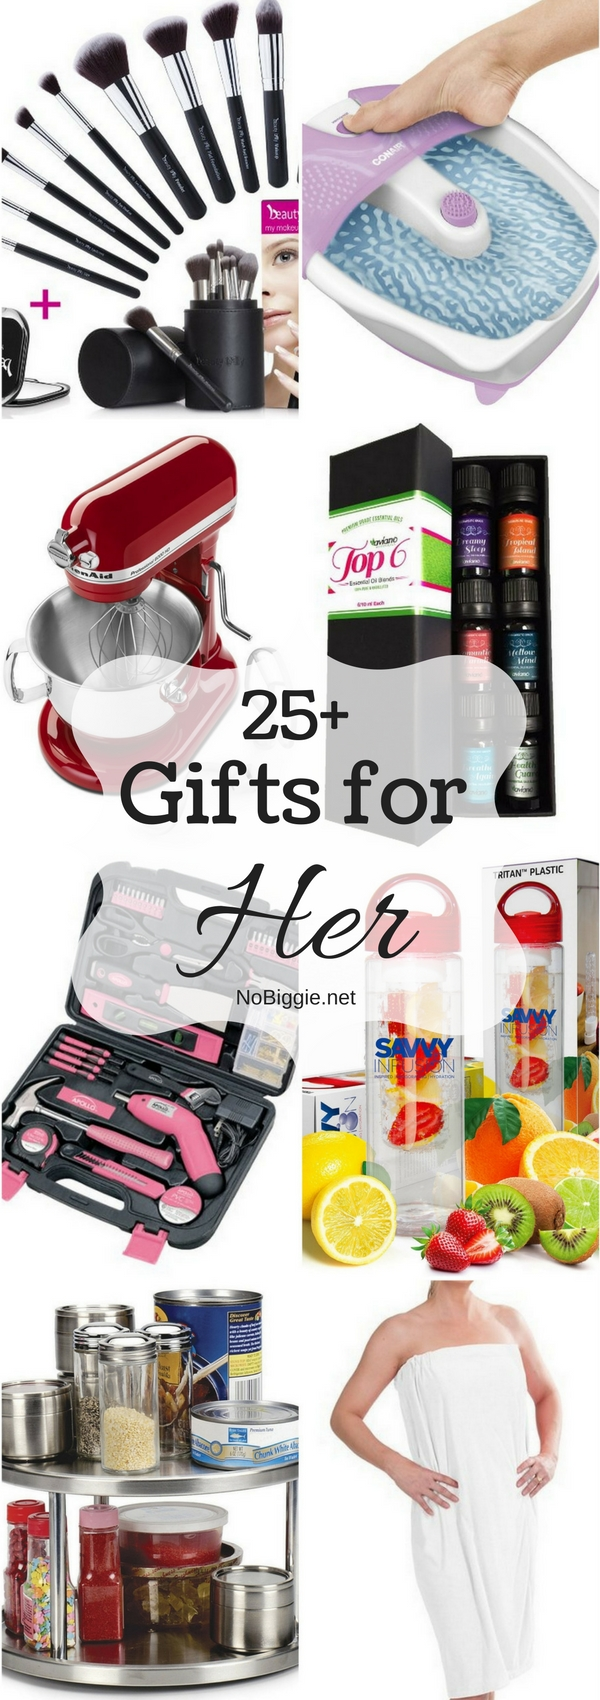 25 gifts for her